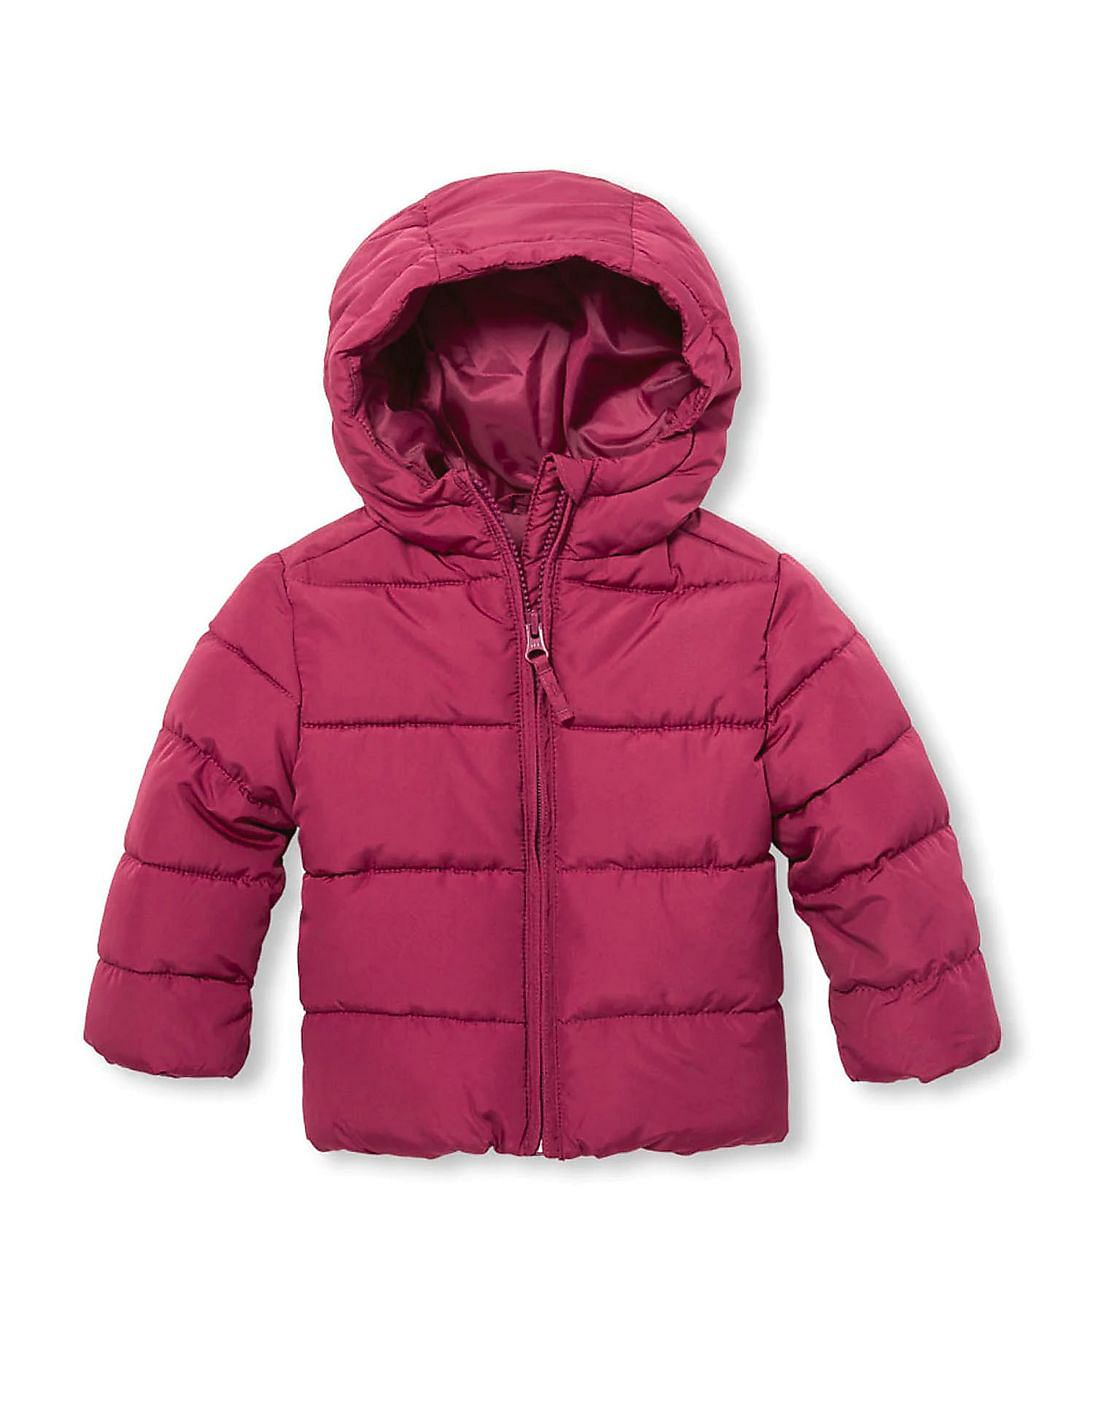 The Childrens Place Toddler Girls Coat